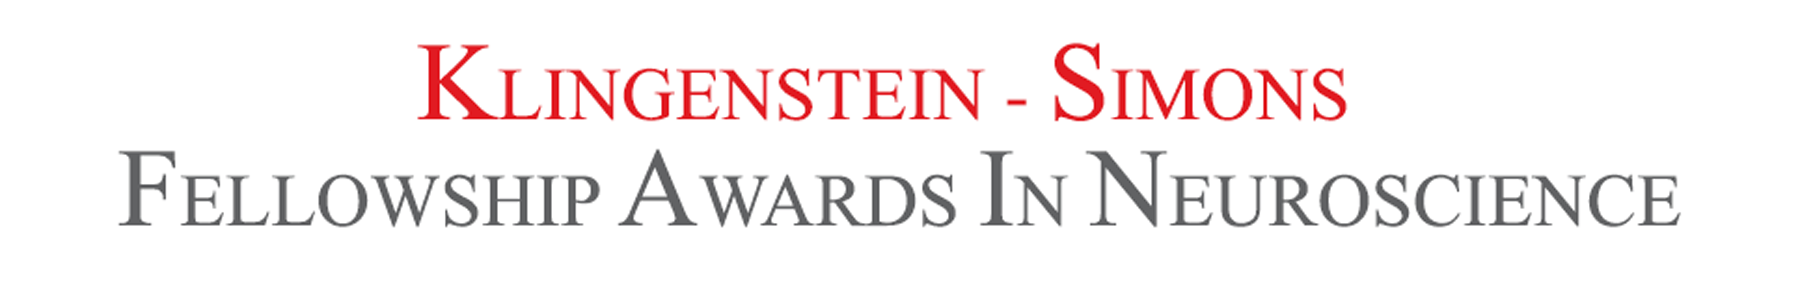 Klingenstein-Simons Fellowship Awards in Neuroscience